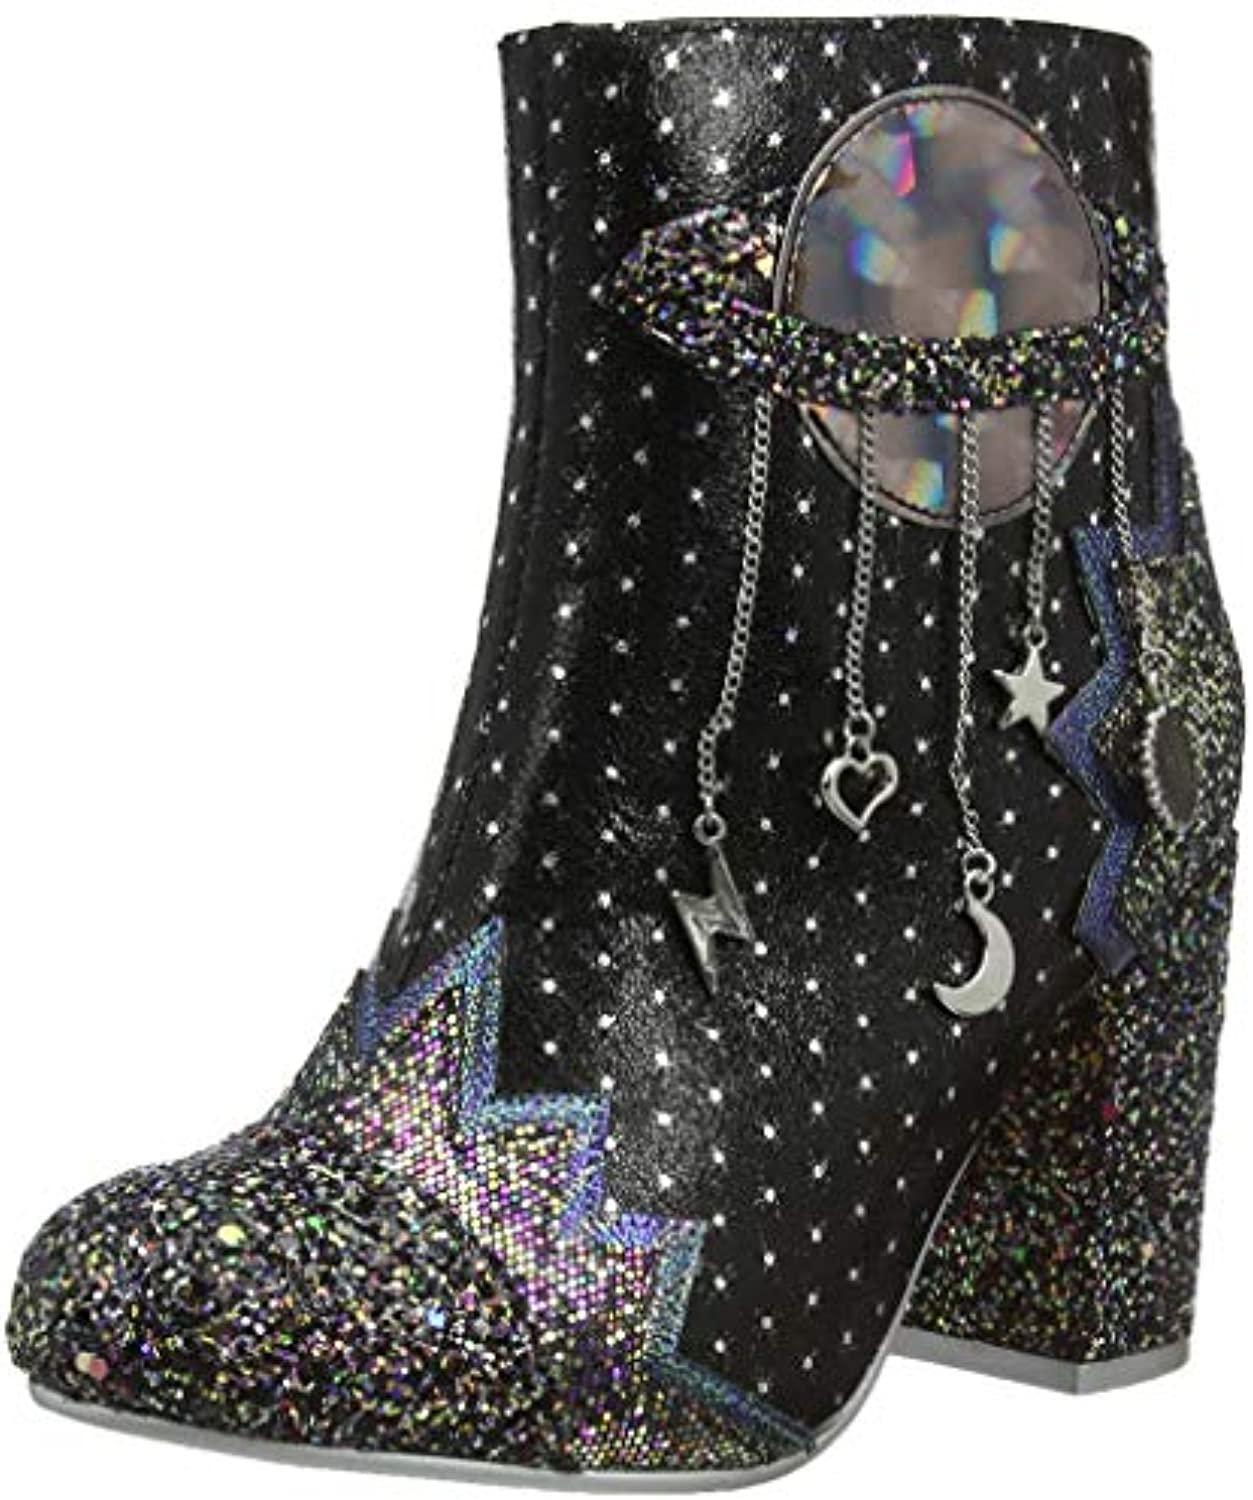 innovative design 34da4 316bc Homme   femme femme femme Irregular Choice Intergalactic, Bottines  FemmeB079SPFPXZParent Excellente valeur acheter Grand nom